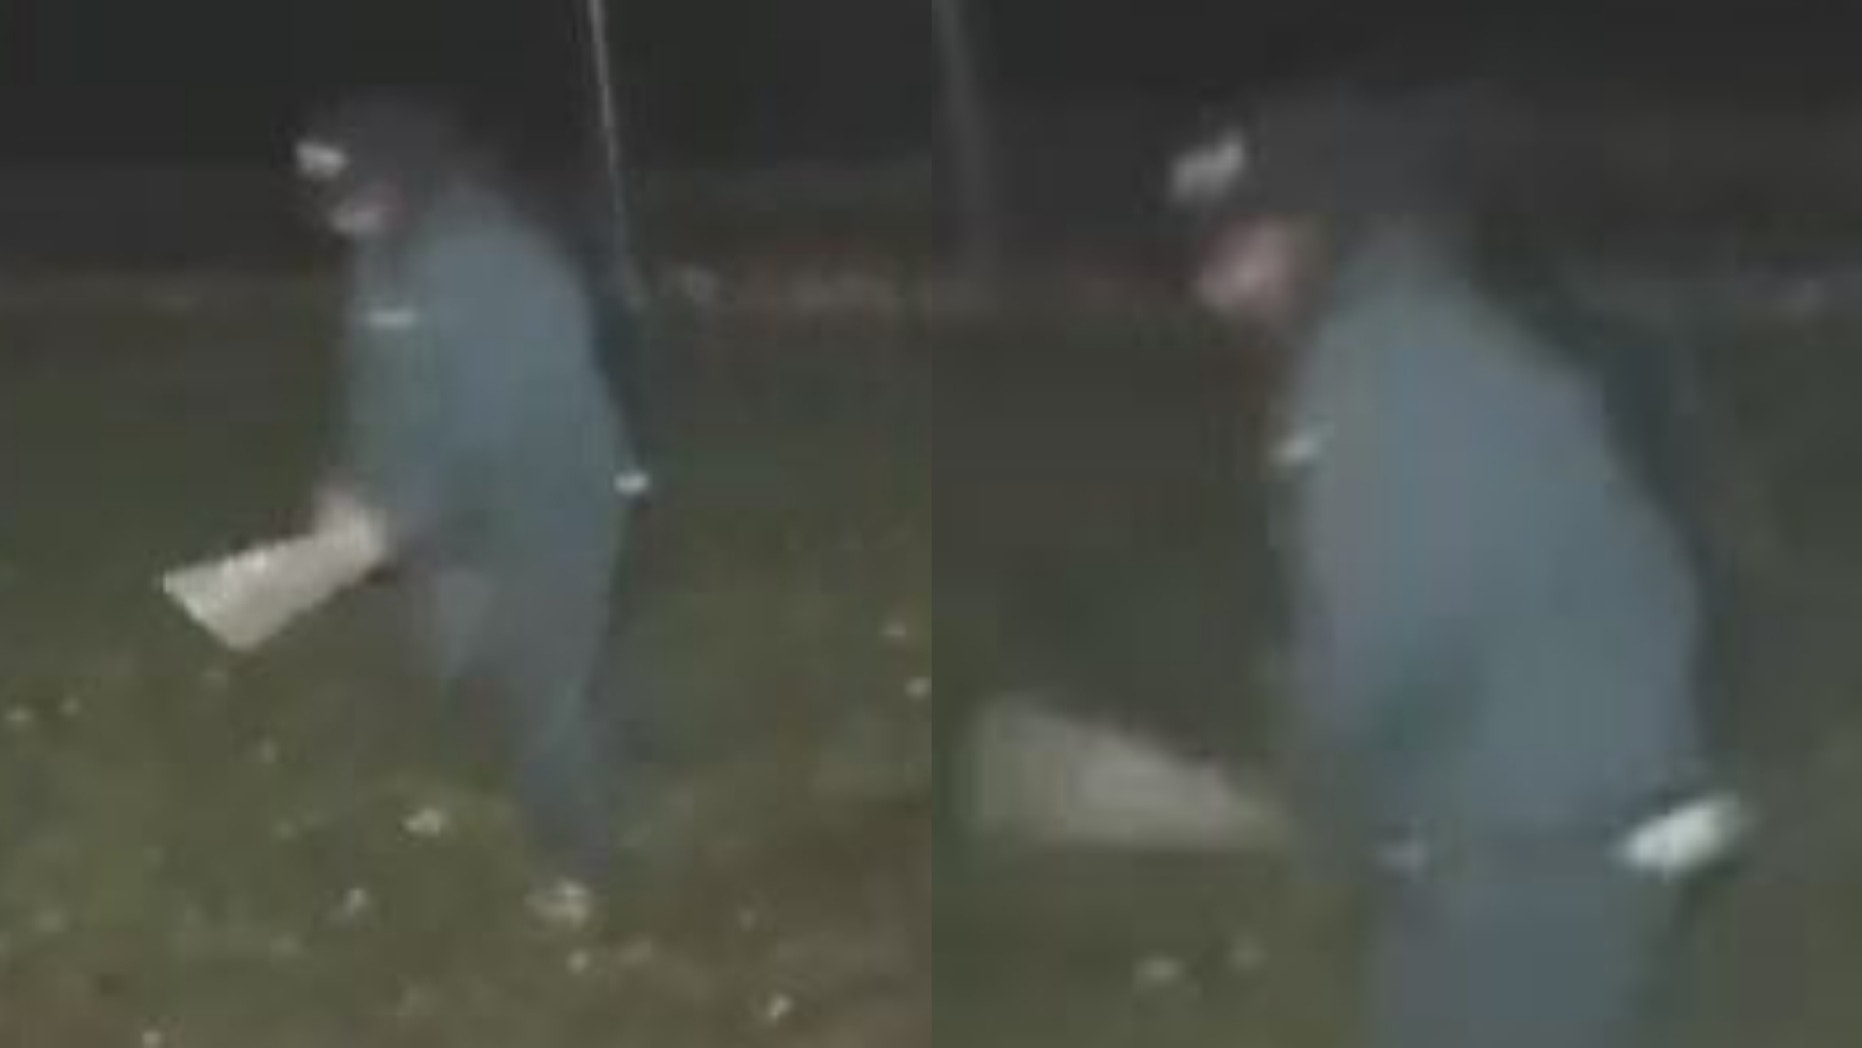 Police are looking for a bat-wielding man who attacked a woman on Long Island.